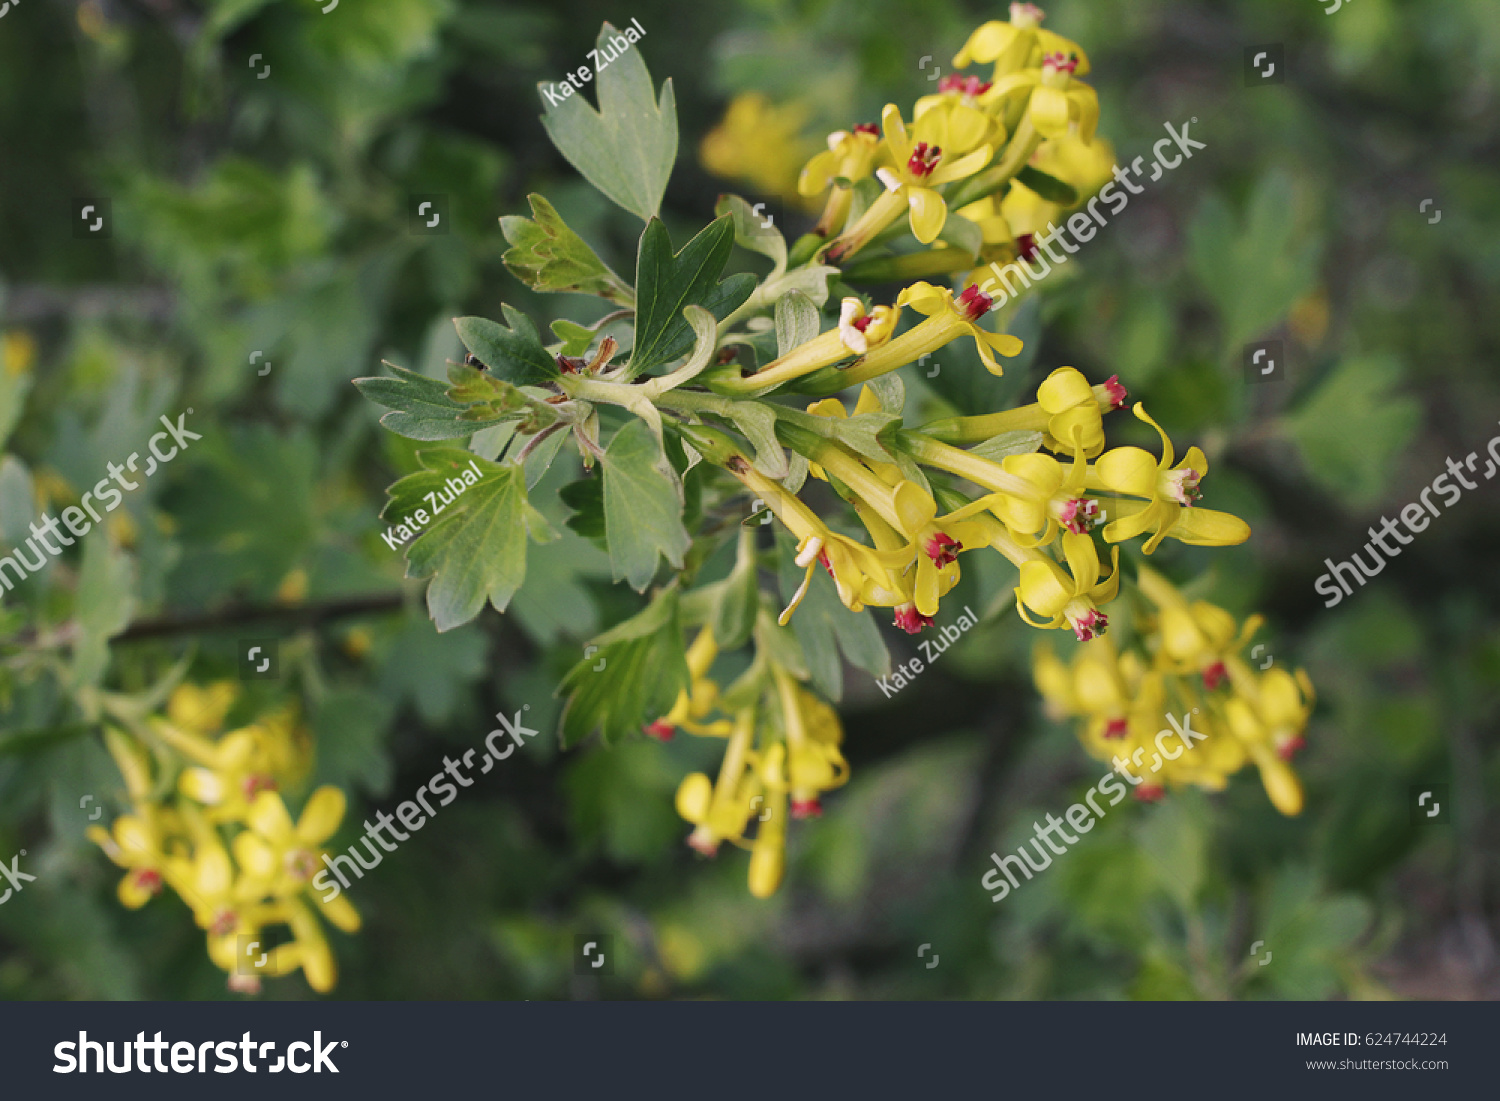 Flowering Bush Of Currant Green Leaves And Yellow Flowers Ez Canvas